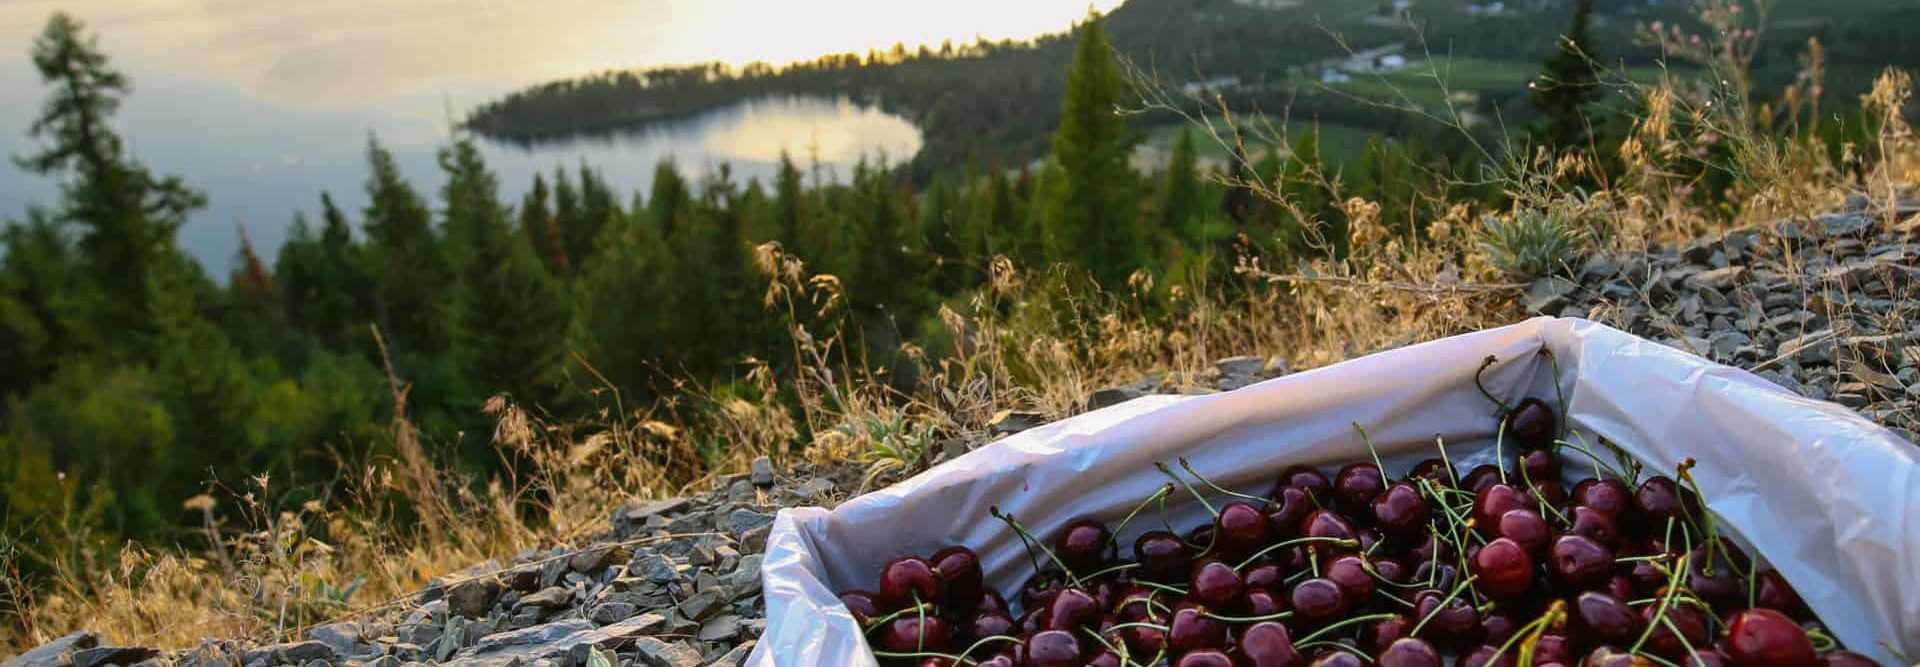 Cherries Over Lake Montana Glacier Fresh Cherry Orchard